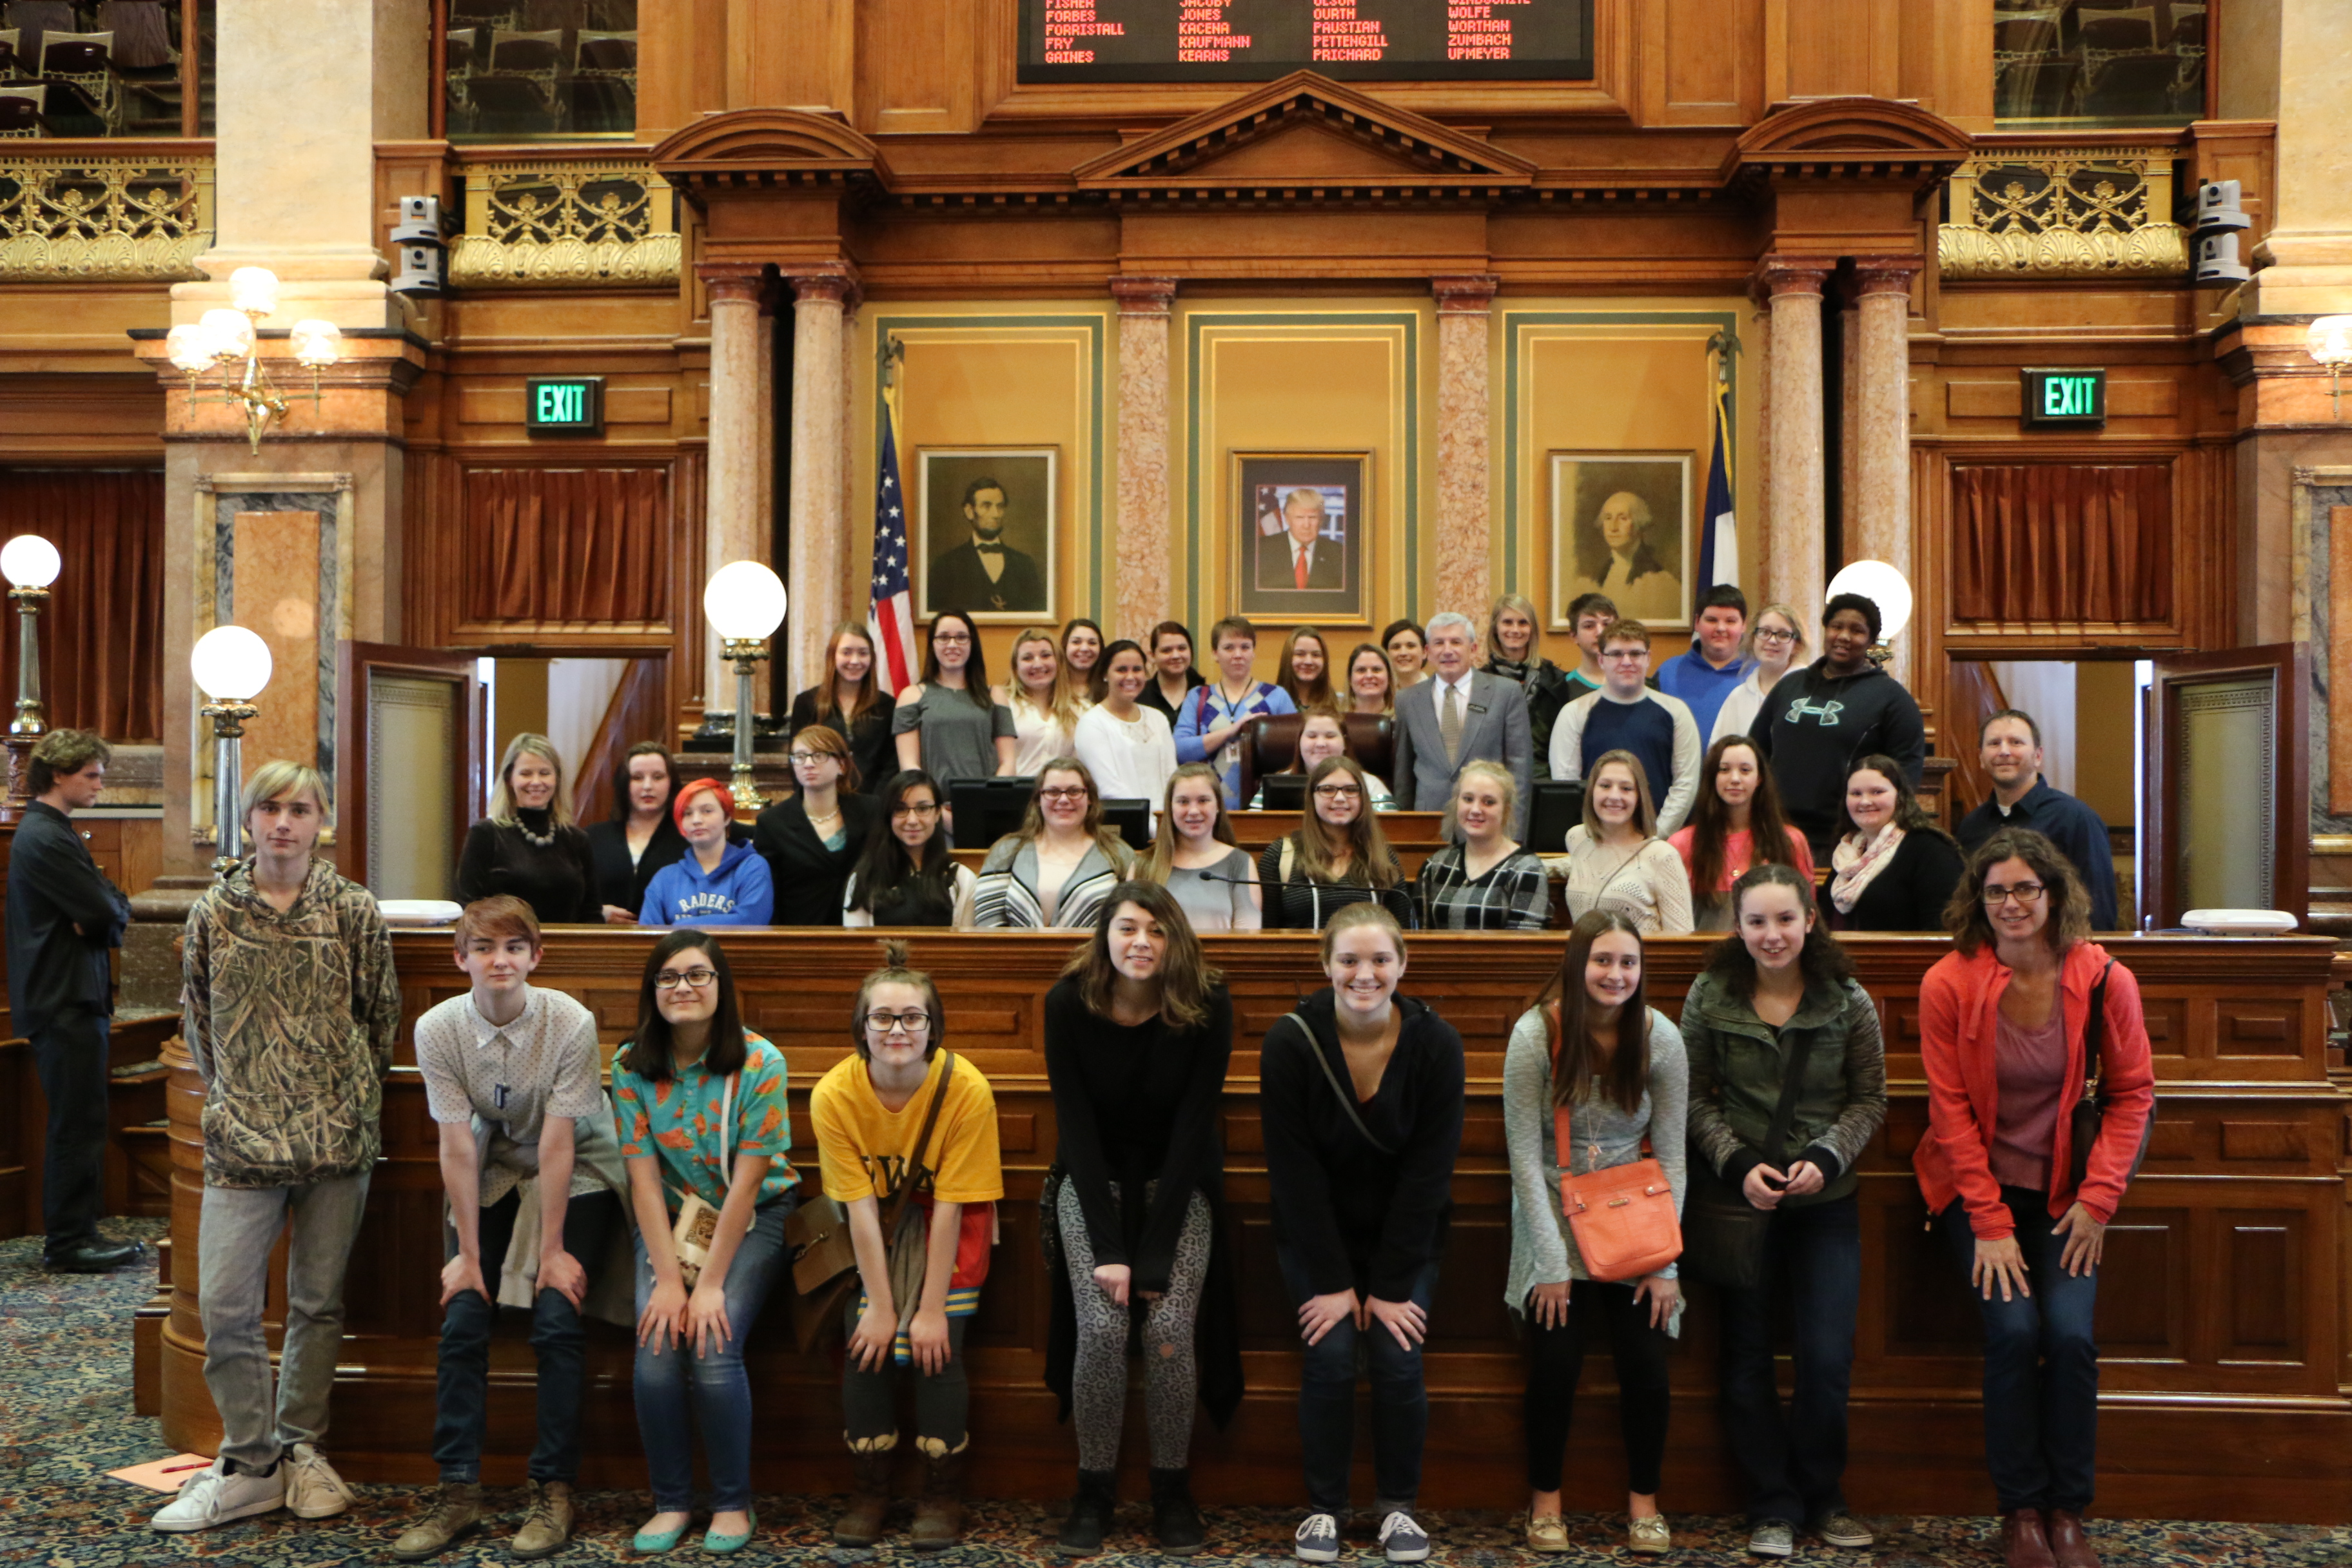 Last week, students from Monticello, Anamosa, and Midland high schools, along with adult chaperones, attended Day on the Hill at the State Capitol in Des Moines. The event centered on substance abuse prevention. The students and adults are pictured here with Rep. Andy McKean. (Photo submitted)